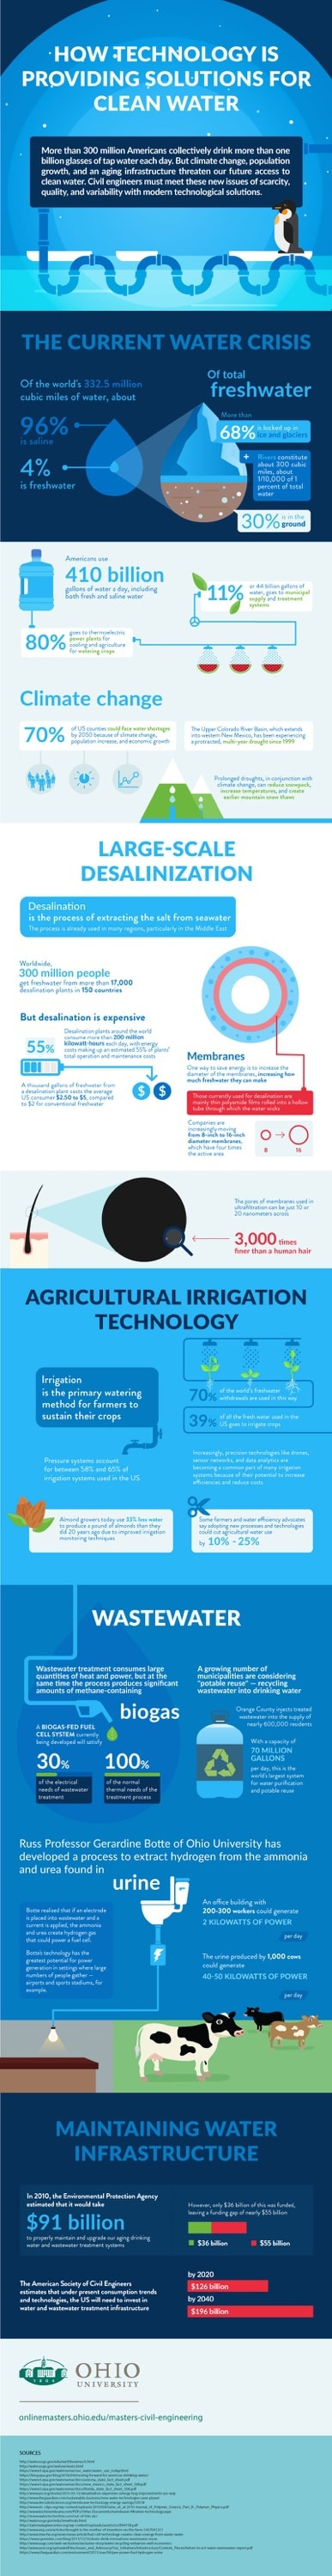 Check out thisinfographic to learn about the ways technology is providing solutions for clean water: